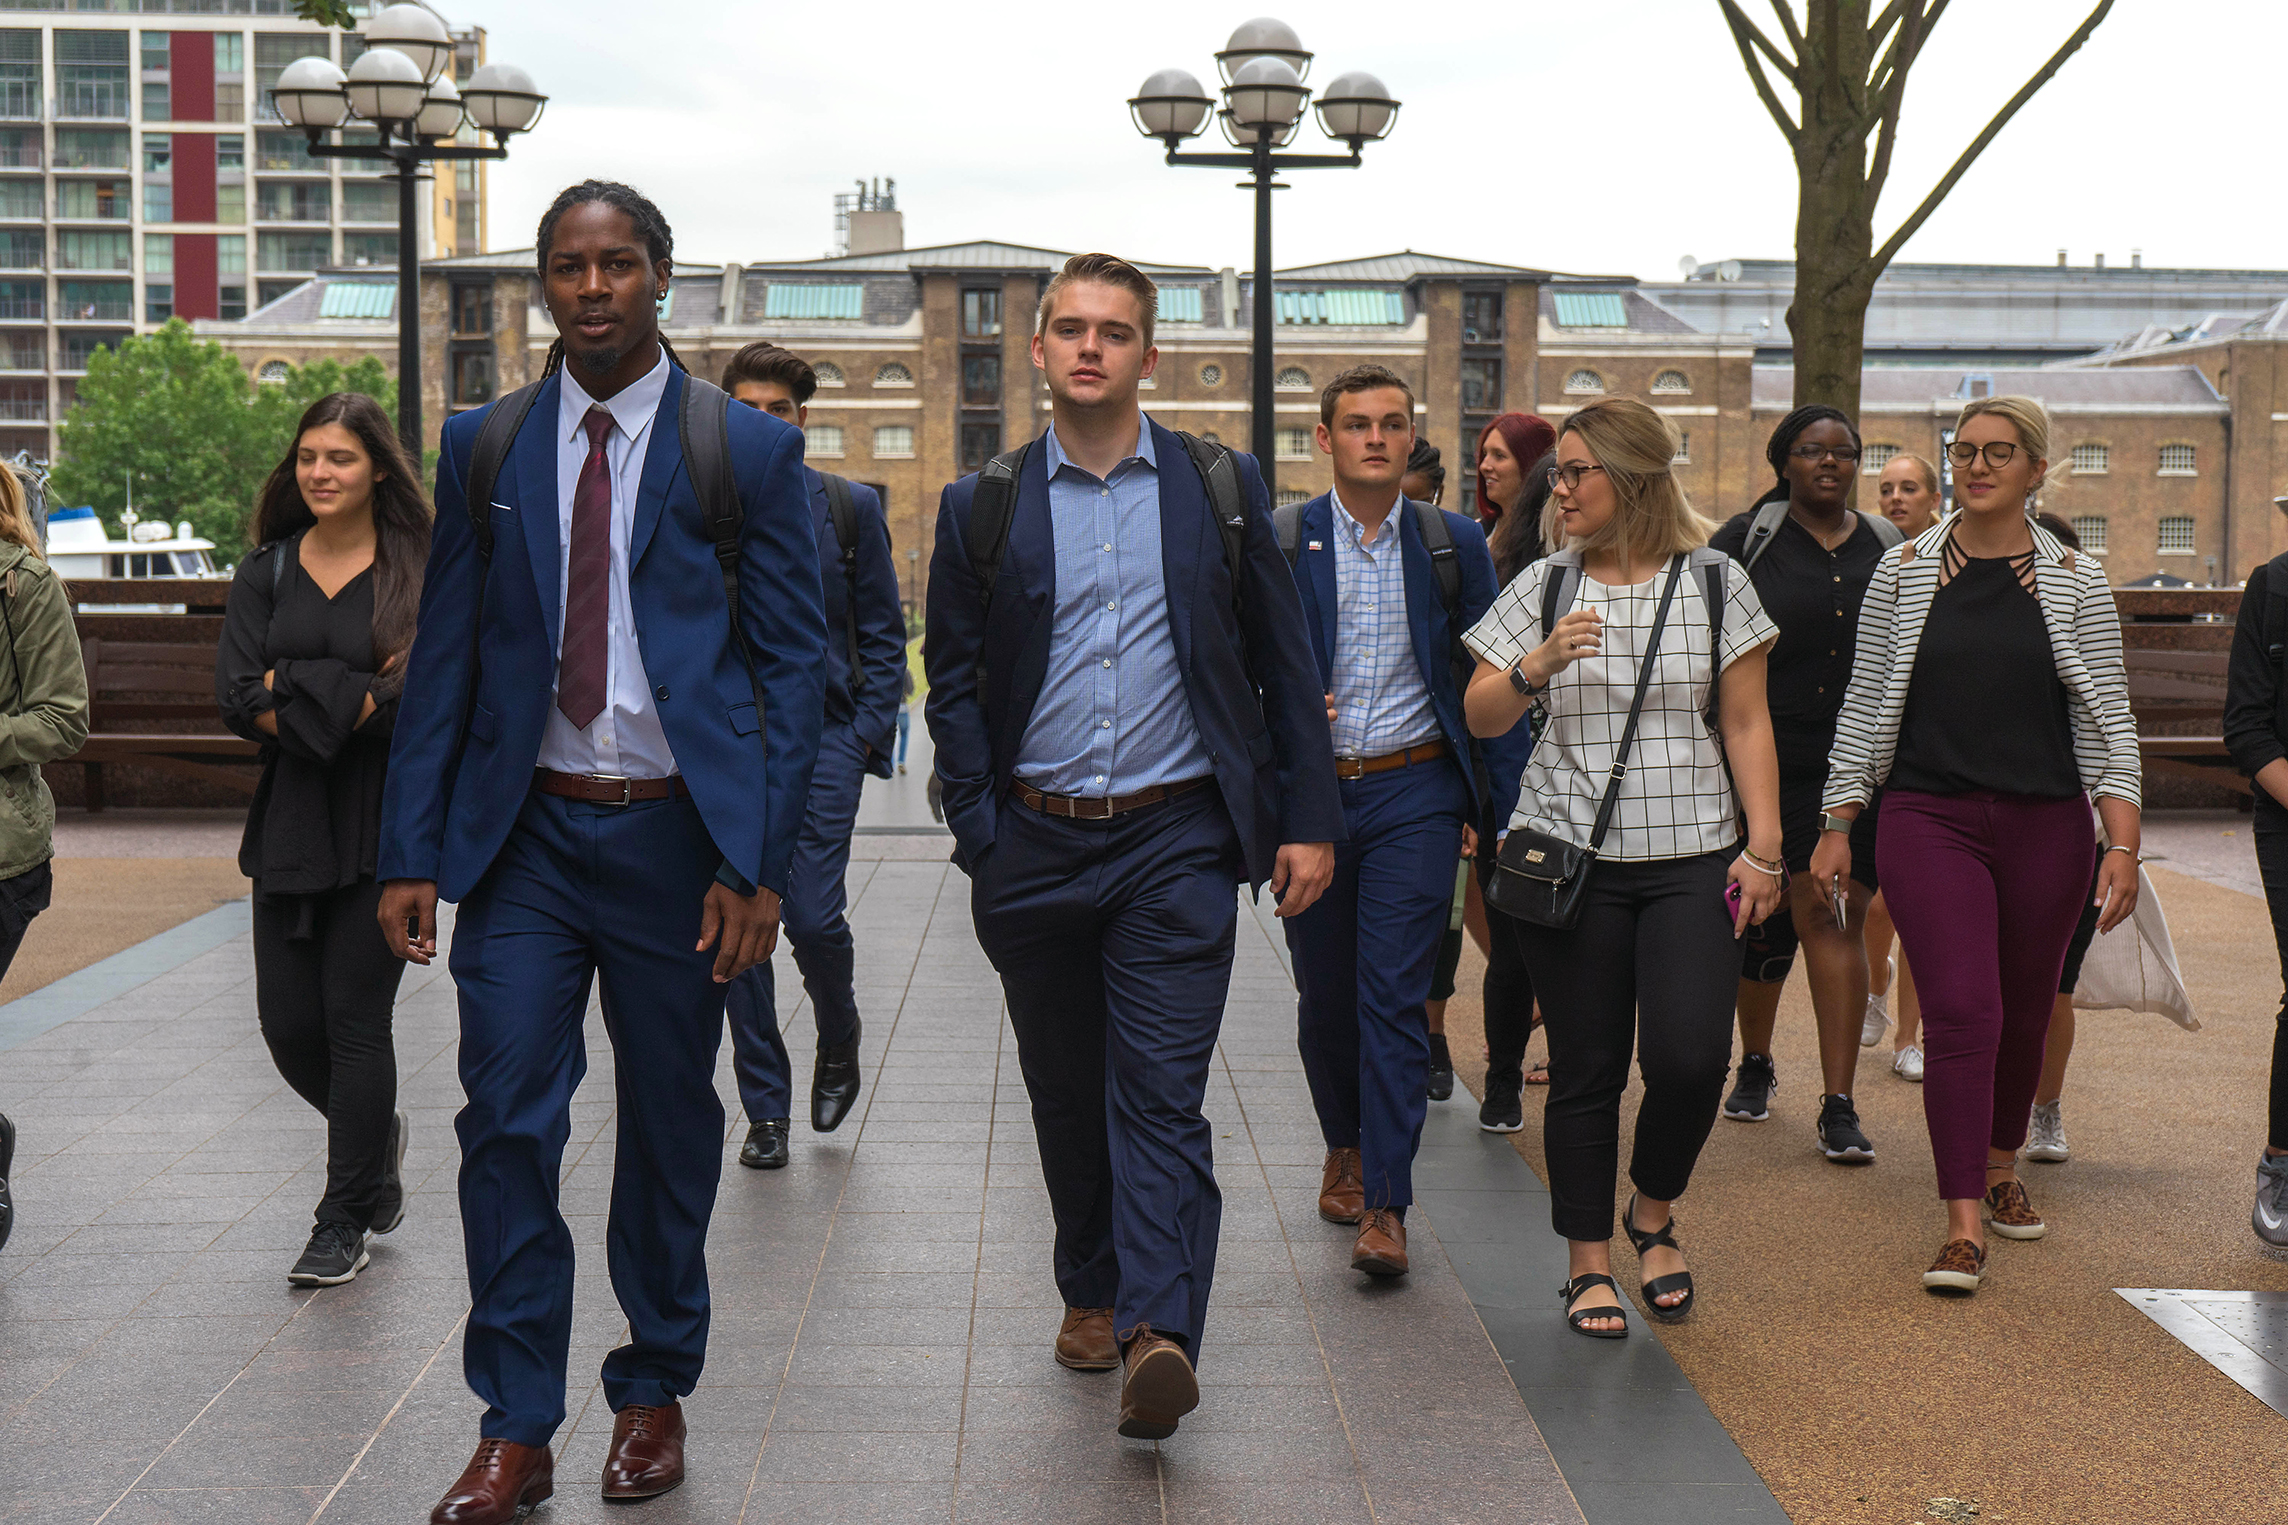 R.J. Sayler with Study Abroad students at Canary Wharf in London.